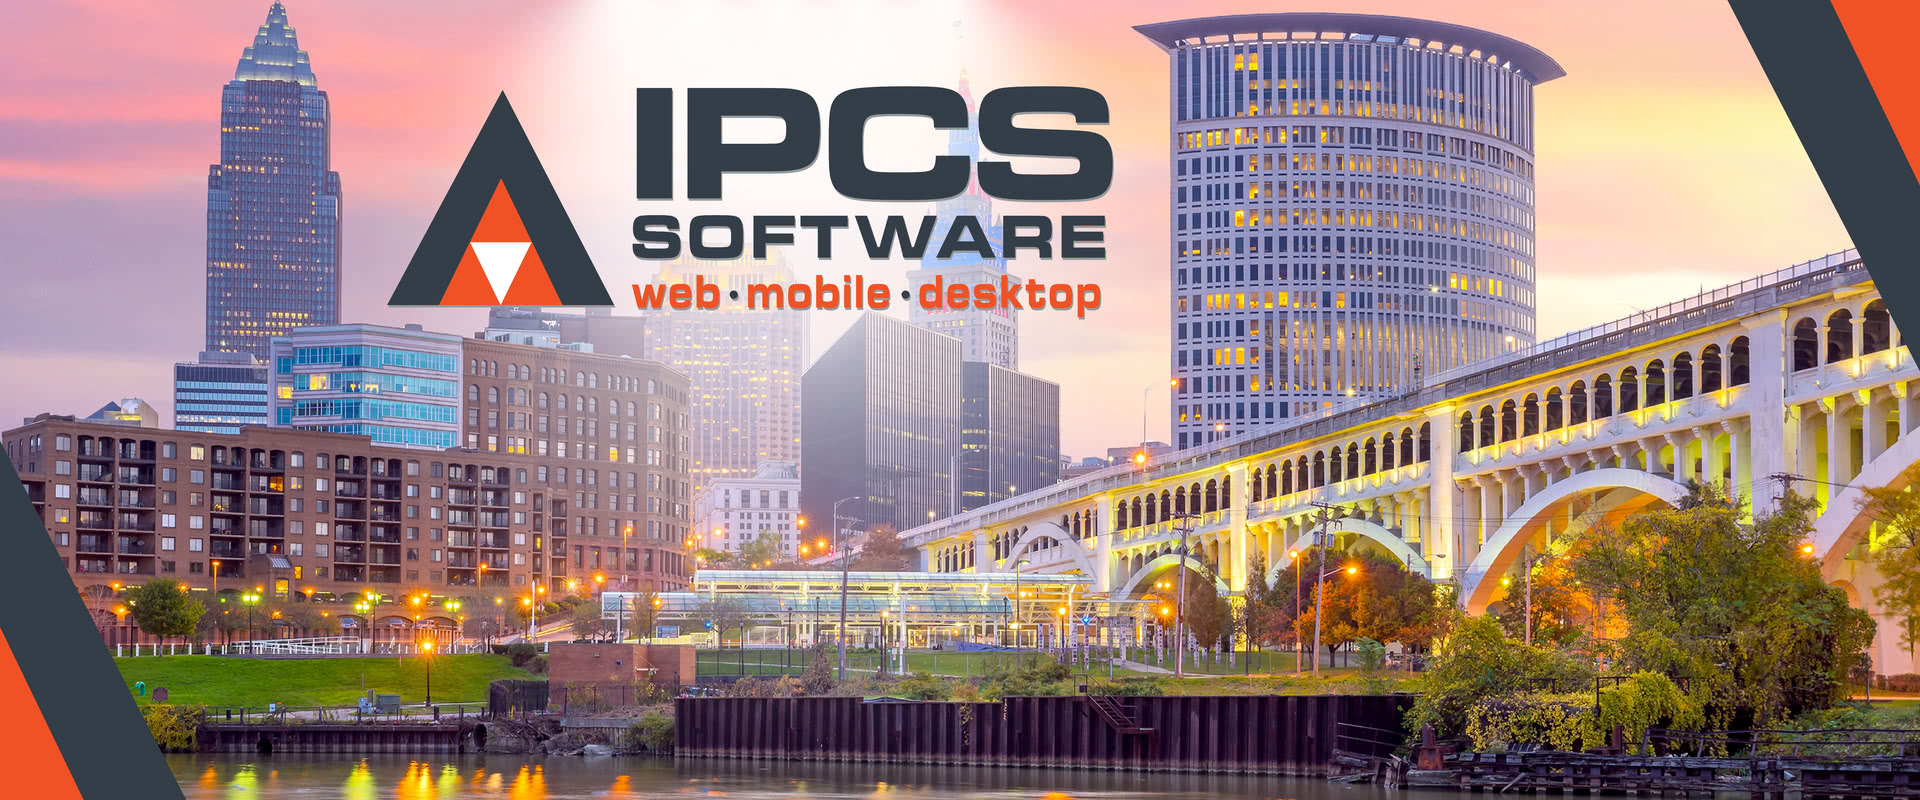 IPCS SOFTWARE, WEB DESIGN, SEARCH ENGINE OPTIMIZATION, WEB APPLICATION DEVELOPMENT, MOBILE APPLICATION DEVELOPMENT, BROWSER EXTENSION DEVELOPMENT, DESKTOP APPLICATION DEVELOPMENT, OFFICE 365 EXCHANGE ADMINISTRATION, TECHNICAL CONSULTING, CLEVELAND OHIO